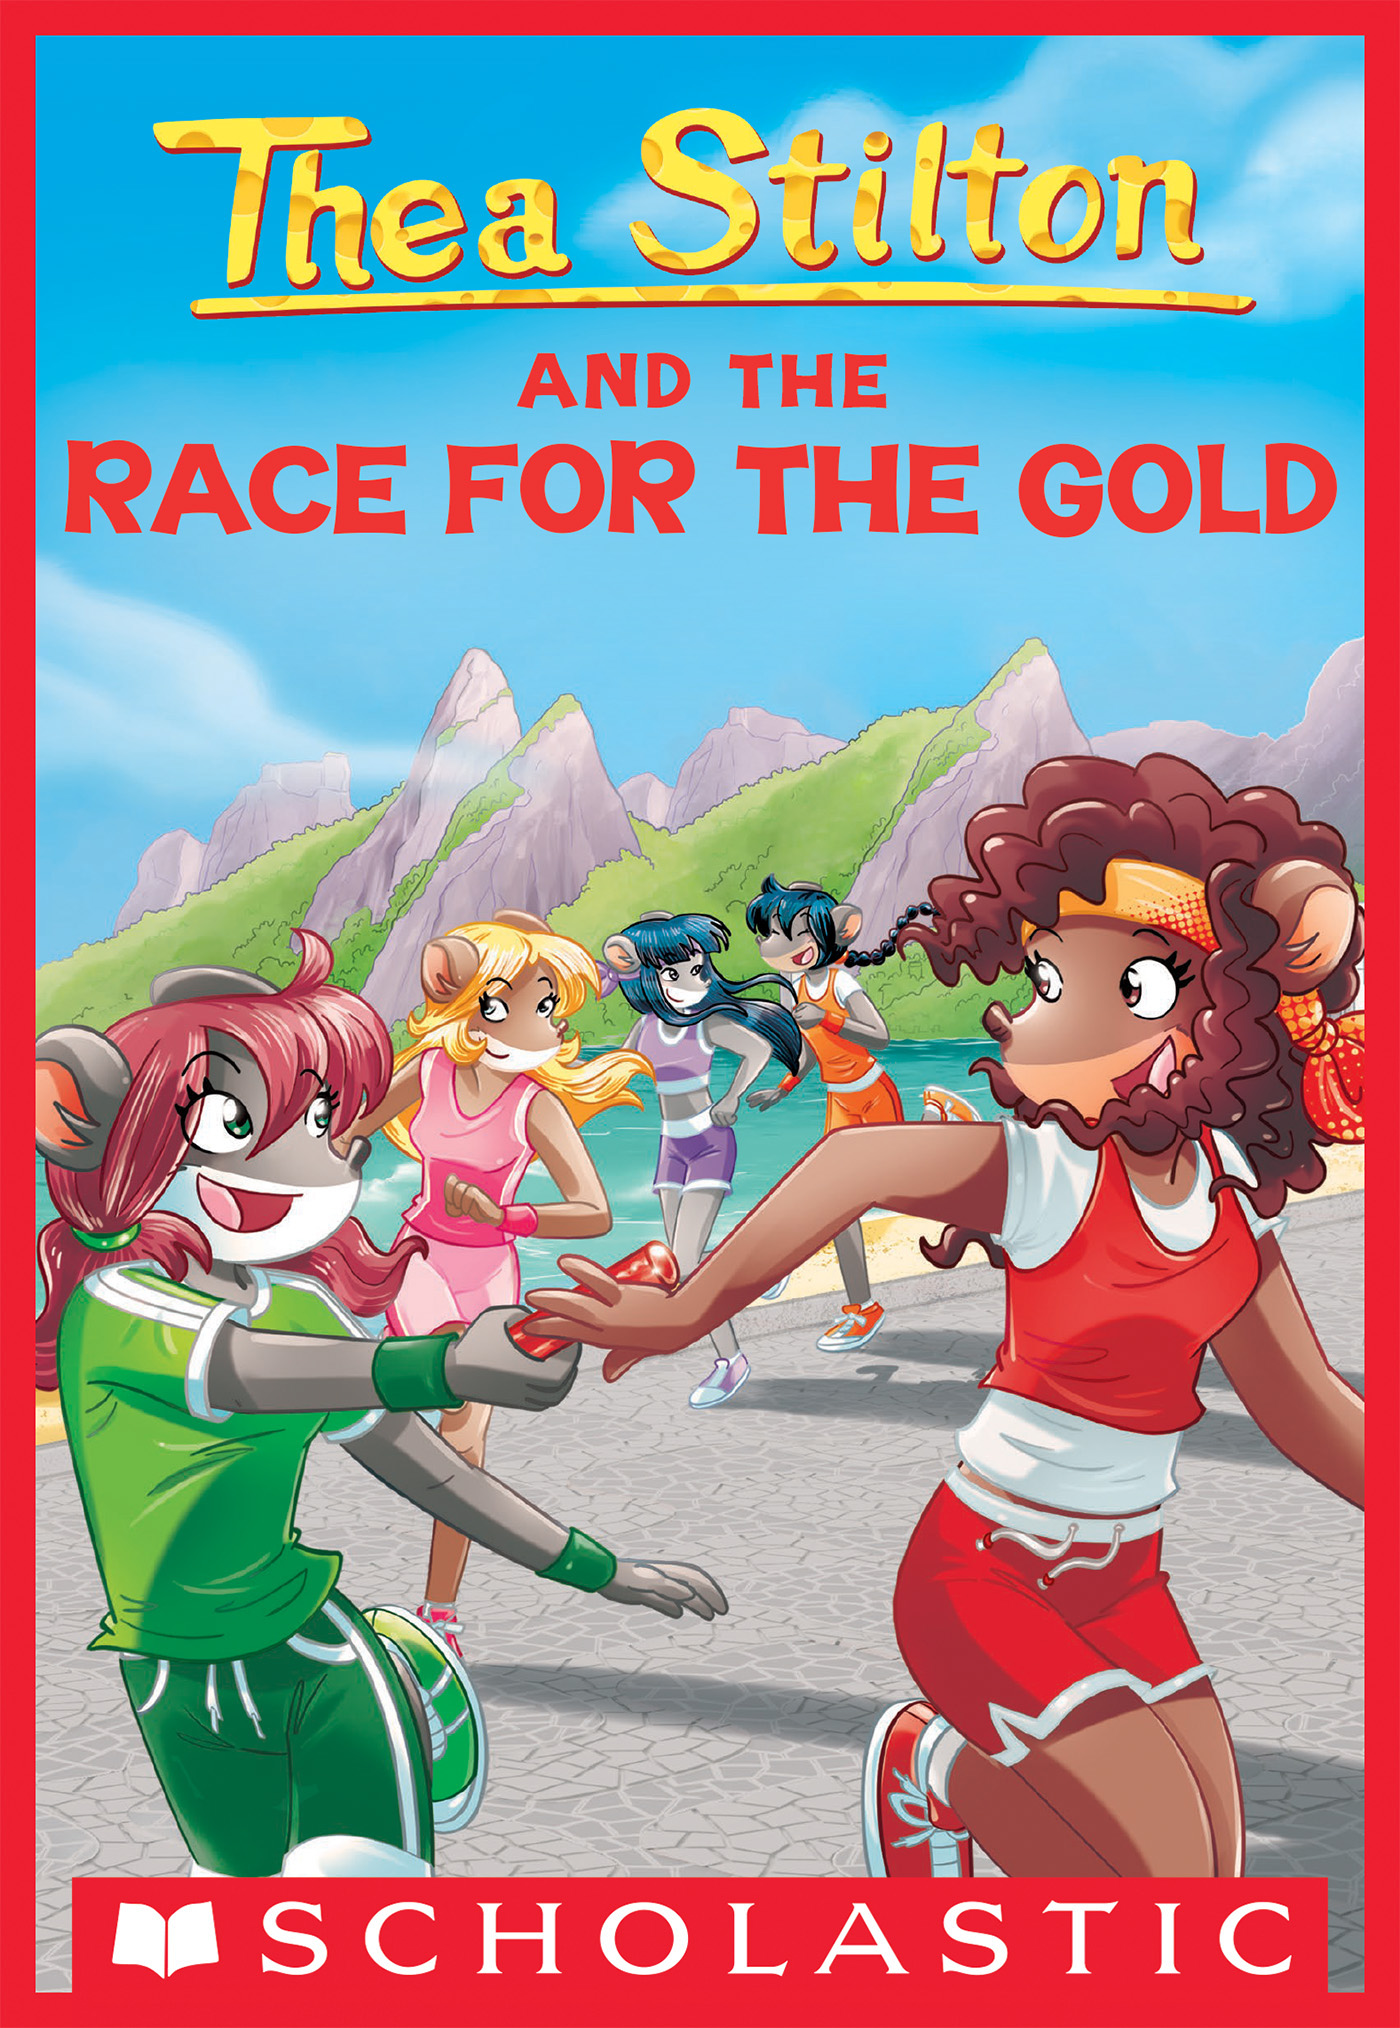 Thea Stilton and the Race for the Gold (Thea Stilton #31)